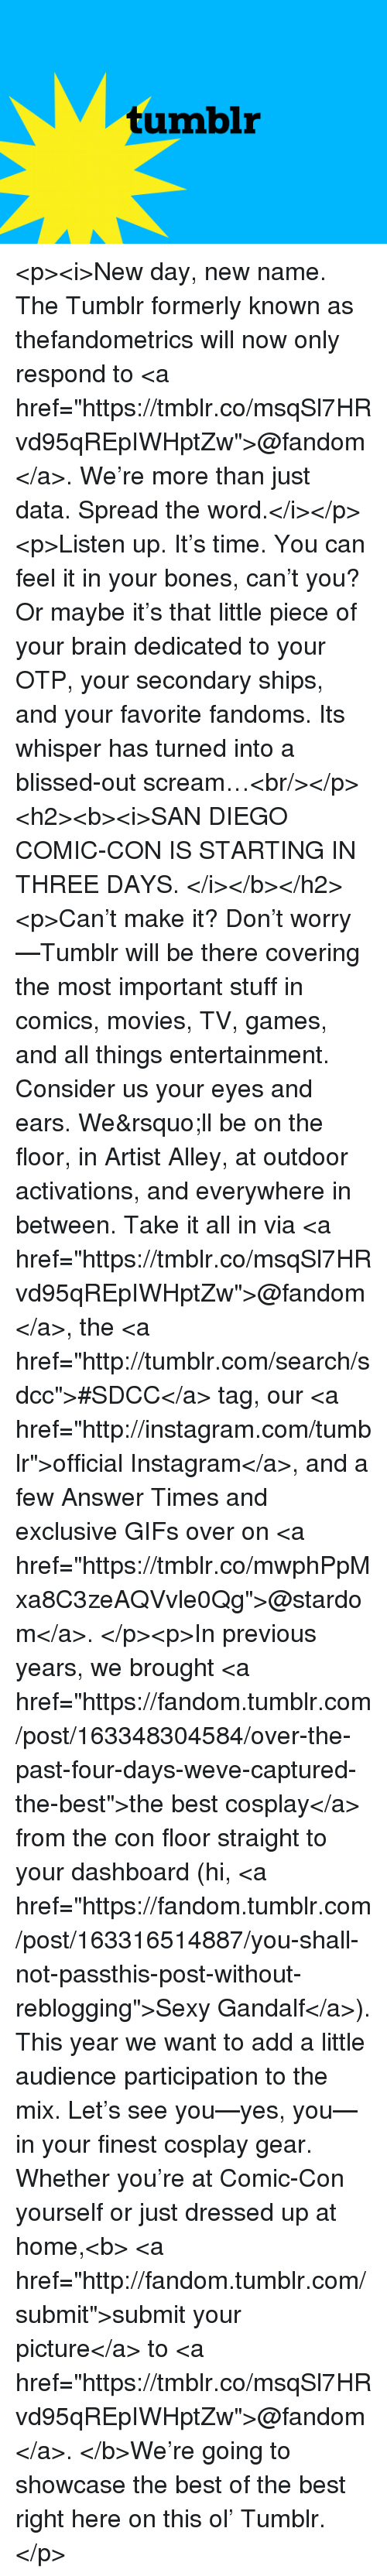 """formerly: tumblr <p><i>New day, new name. The Tumblr formerly known as thefandometrics will now only respond to <a href=""""https://tmblr.co/msqSl7HRvd95qREpIWHptZw"""">@fandom</a>. We're more than just data. Spread the word.</i></p><p>Listen up. It's time. You can feel it in your bones, can't you? Or maybe it's that little piece of your brain dedicated to your OTP, your secondary ships, and your favorite fandoms. Its whisper has turned into a blissed-out scream…<br/></p><h2><b><i>SAN DIEGO COMIC-CON IS STARTING IN THREE DAYS. </i></b></h2><p>Can't make it? Don't worry—Tumblr will be there covering the most important stuff in comics, movies, TV, games, and all things entertainment. Consider us your eyes and ears. We&rsquo;ll be on the floor, in Artist Alley, at outdoor activations, and everywhere in between. Take it all in via <a href=""""https://tmblr.co/msqSl7HRvd95qREpIWHptZw"""">@fandom</a>, the <a href=""""http://tumblr.com/search/sdcc"""">#SDCC</a> tag, our <a href=""""http://instagram.com/tumblr"""">official Instagram</a>, and a few Answer Times and exclusive GIFs over on <a href=""""https://tmblr.co/mwphPpMxa8C3zeAQVvle0Qg"""">@stardom</a>. </p><p>In previous years, we brought <a href=""""https://fandom.tumblr.com/post/163348304584/over-the-past-four-days-weve-captured-the-best"""">the best cosplay</a> from the con floor straight to your dashboard (hi, <a href=""""https://fandom.tumblr.com/post/163316514887/you-shall-not-passthis-post-without-reblogging"""">Sexy Gandalf</a>). This year we want to add a little audience participation to the mix. Let's see you—yes, you—in your finest cosplay gear. Whether you're at Comic-Con yourself or just dressed up at home,<b> <a href=""""http://fandom.tumblr.com/submit"""">submit your picture</a>to <a href=""""https://tmblr.co/msqSl7HRvd95qREpIWHptZw"""">@fandom</a>.</b>We're going to showcase the best of the best right here on this ol' Tumblr.</p>"""